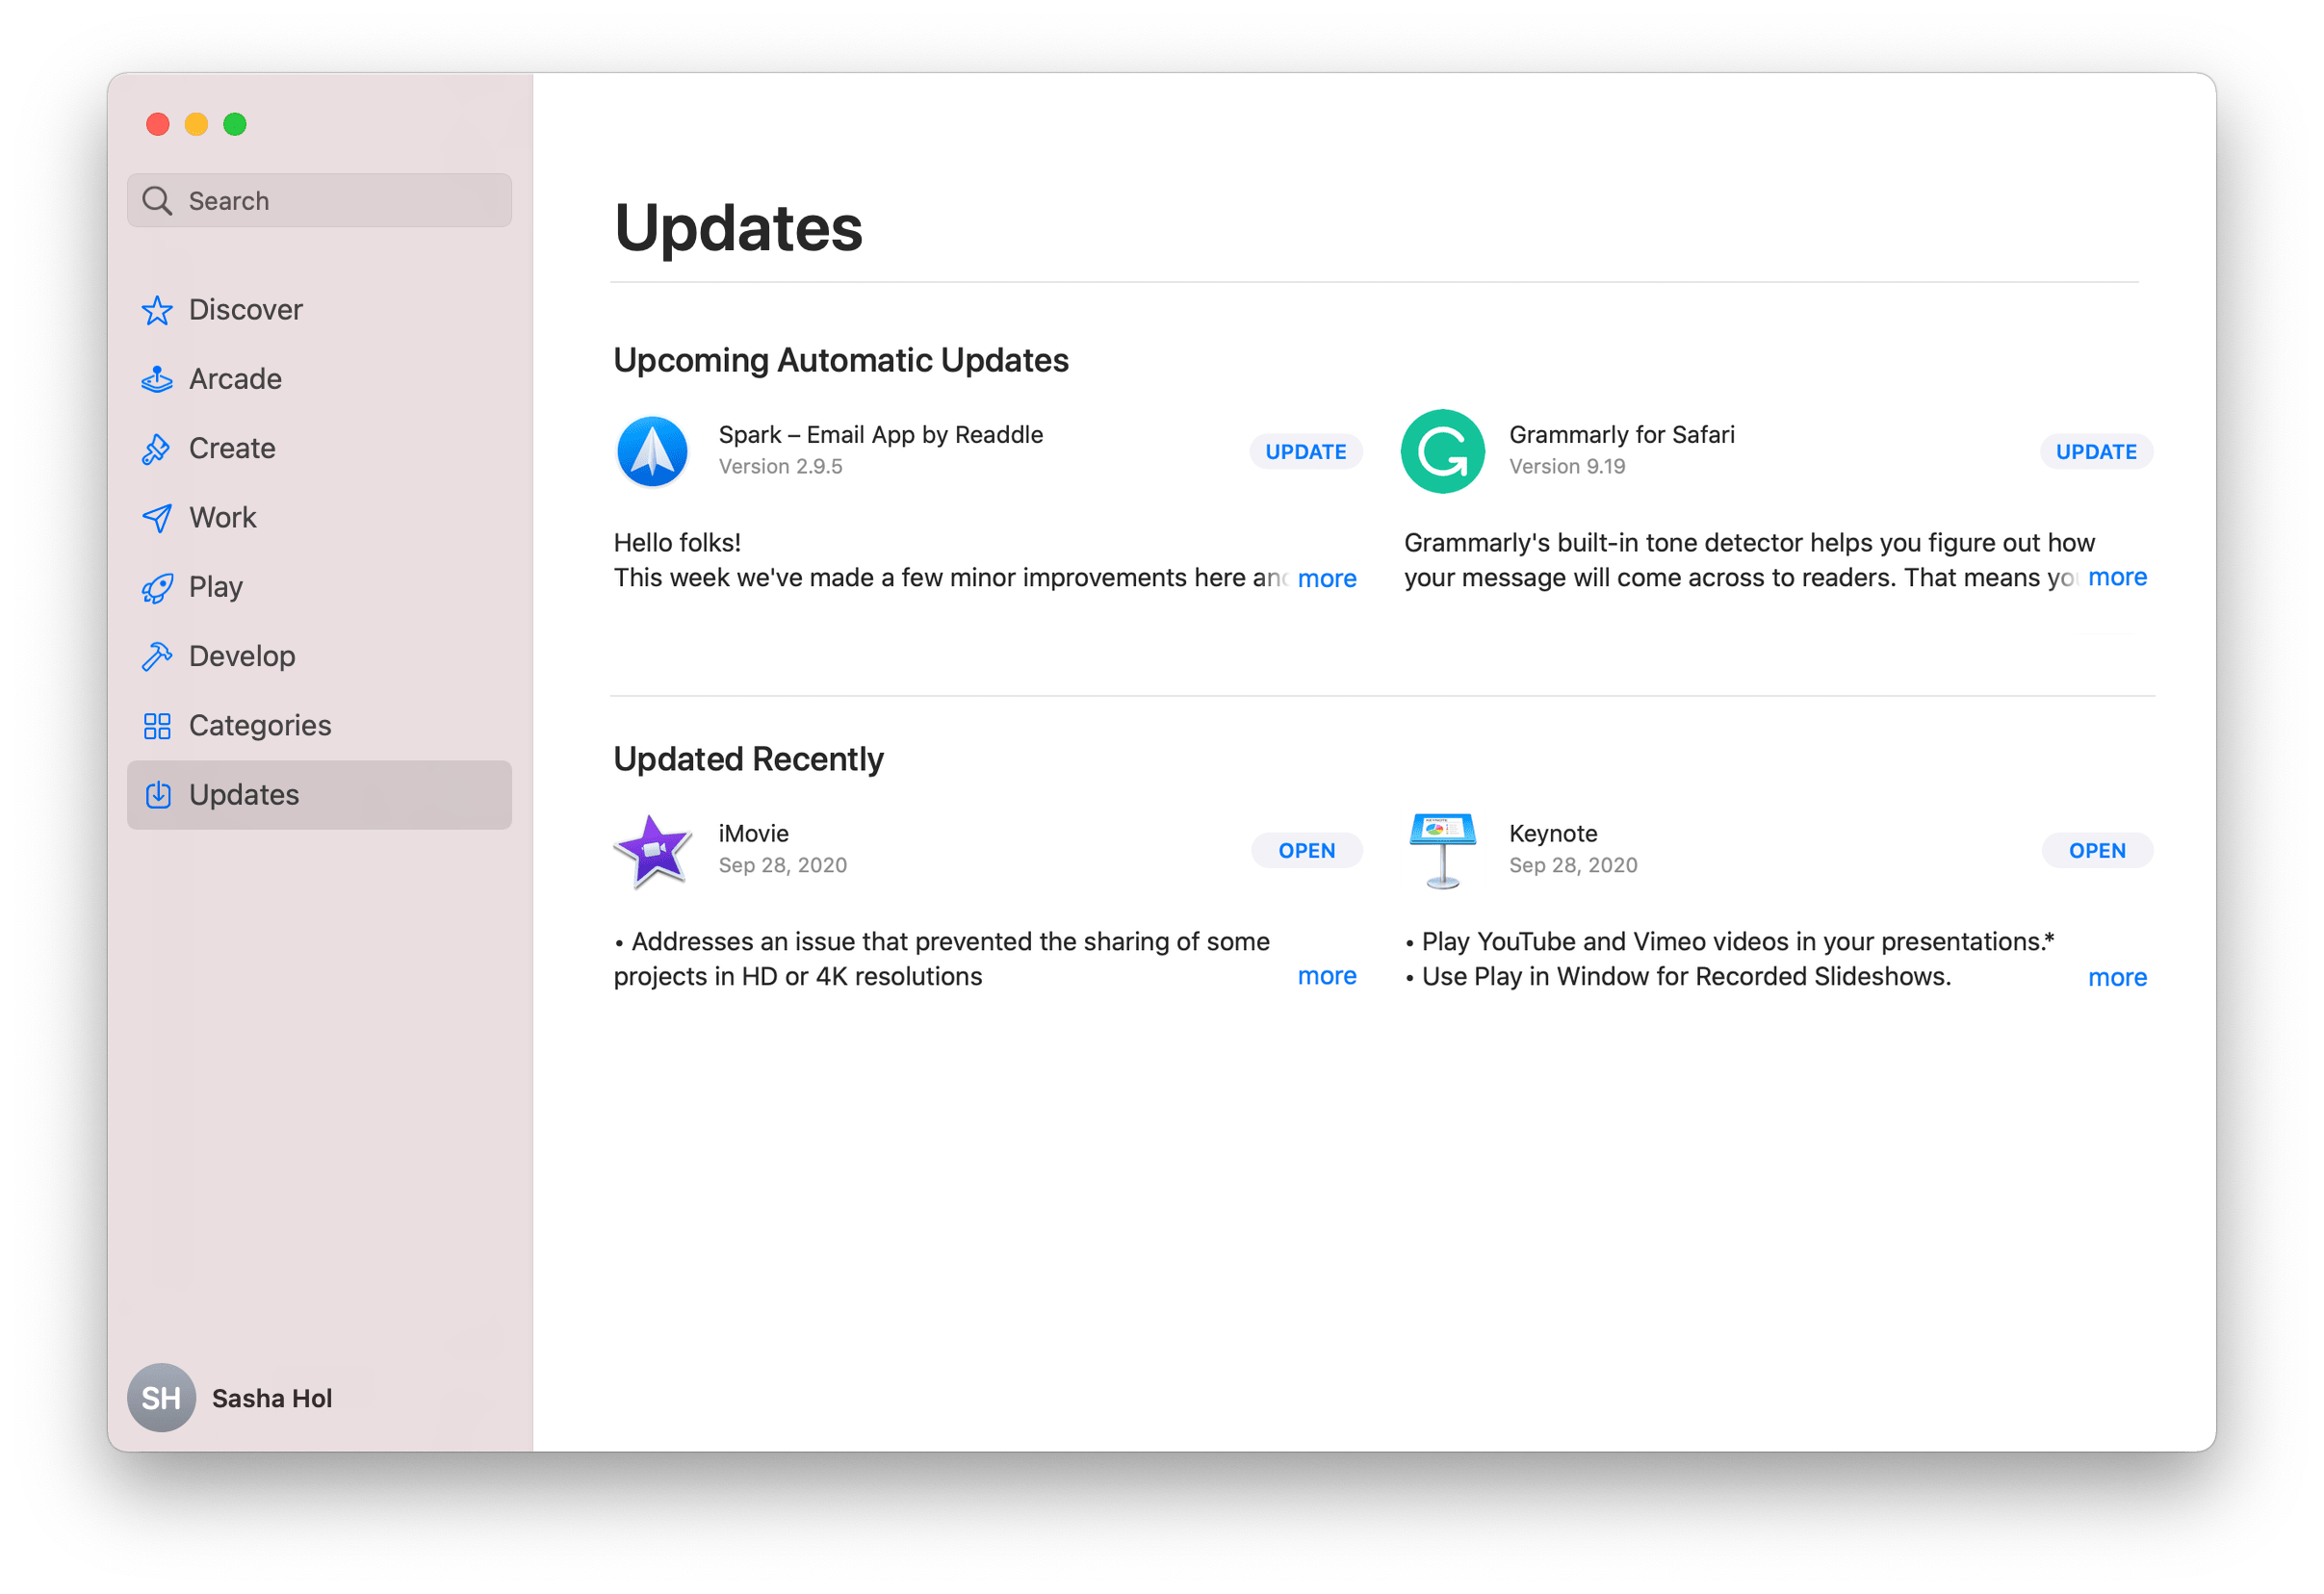 App Store window showing Updates section for apps